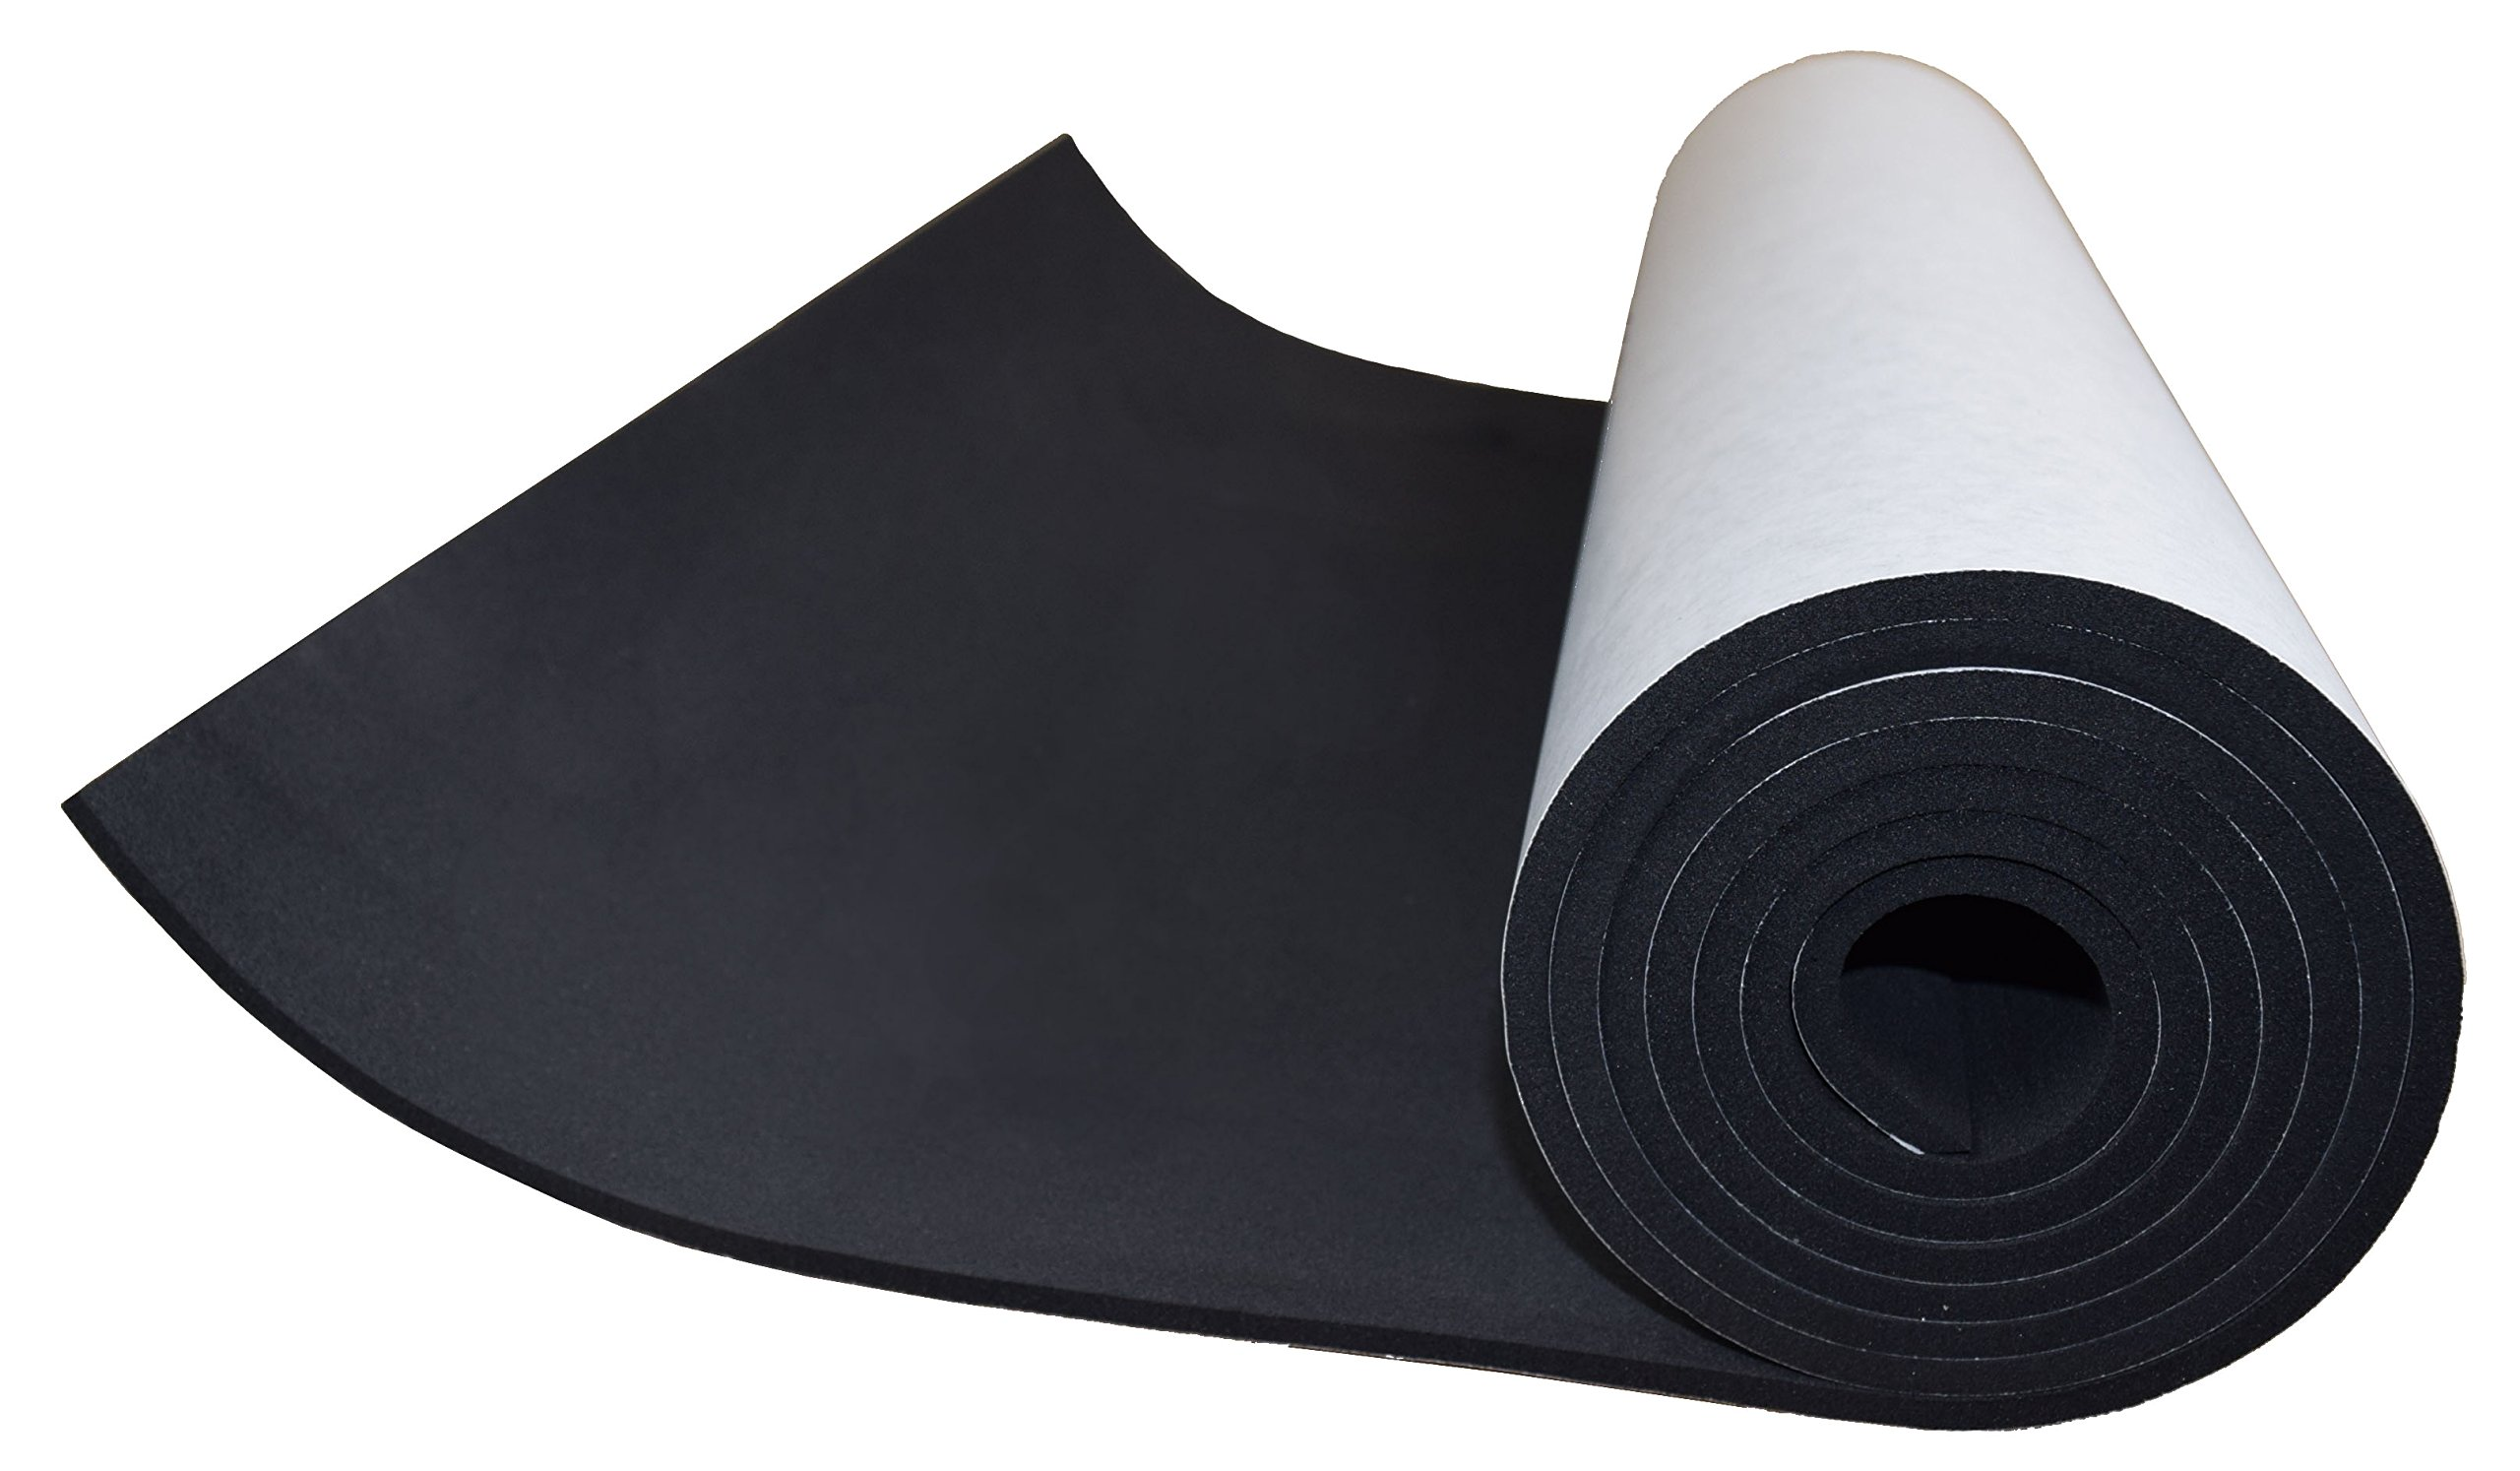 XCEL Extra Large, Value Roll, Sponge Neoprene Sheet with Adhesive 72 in x 17 in x 1/4 in, Made in USA, Easy Cut Material by XCEL